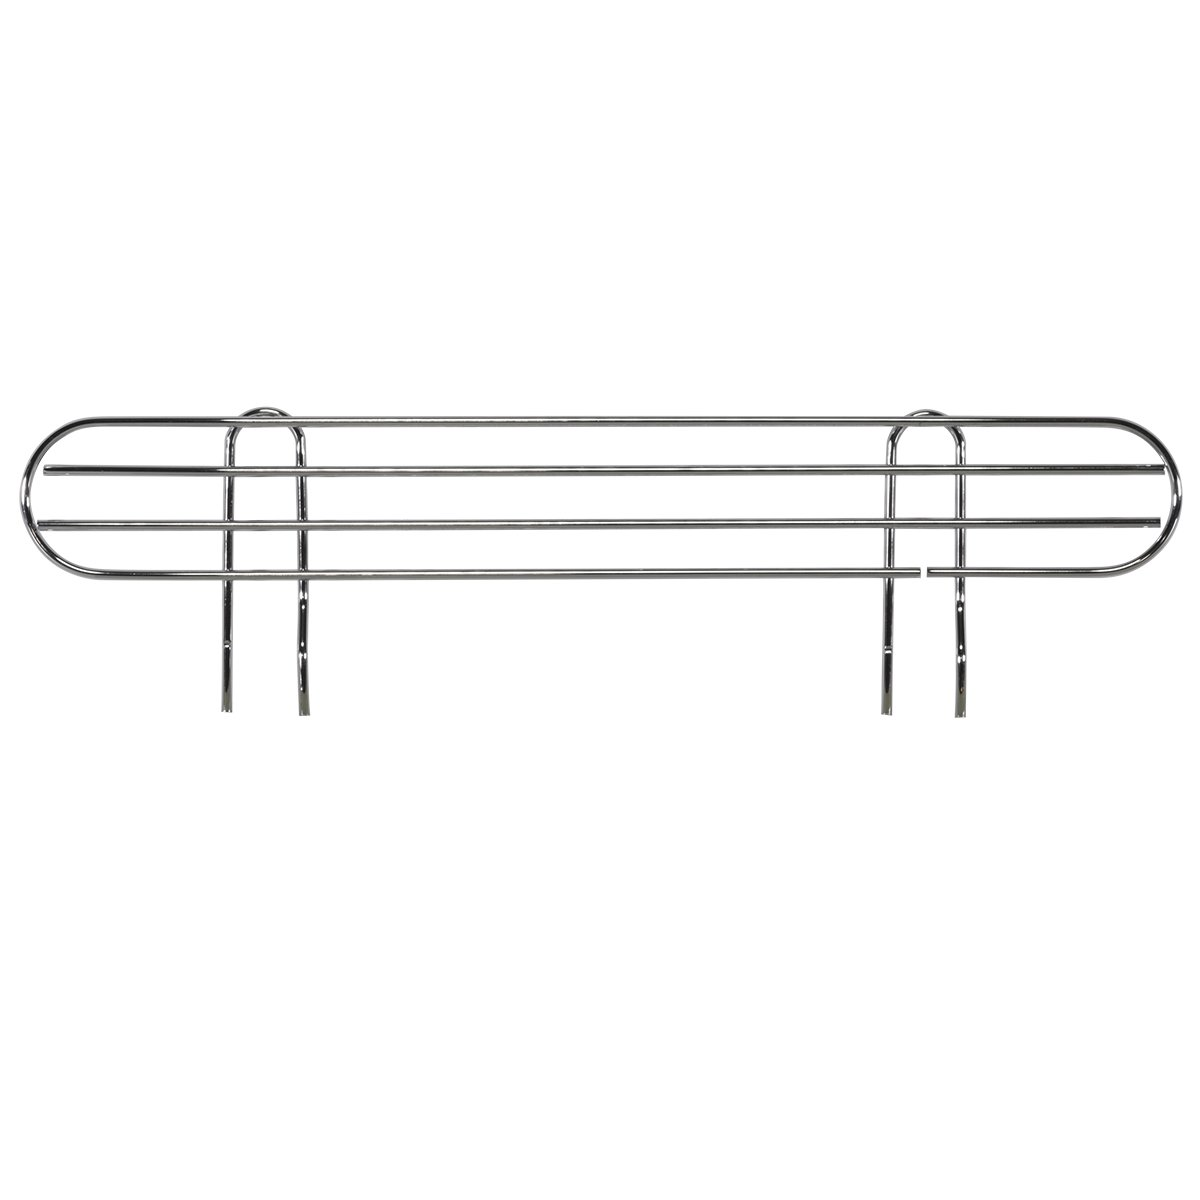 AKRO-MILS AWLEDGE24 - Ledge for 24-Inch Chrome Wire Shelf System - Pack of 4